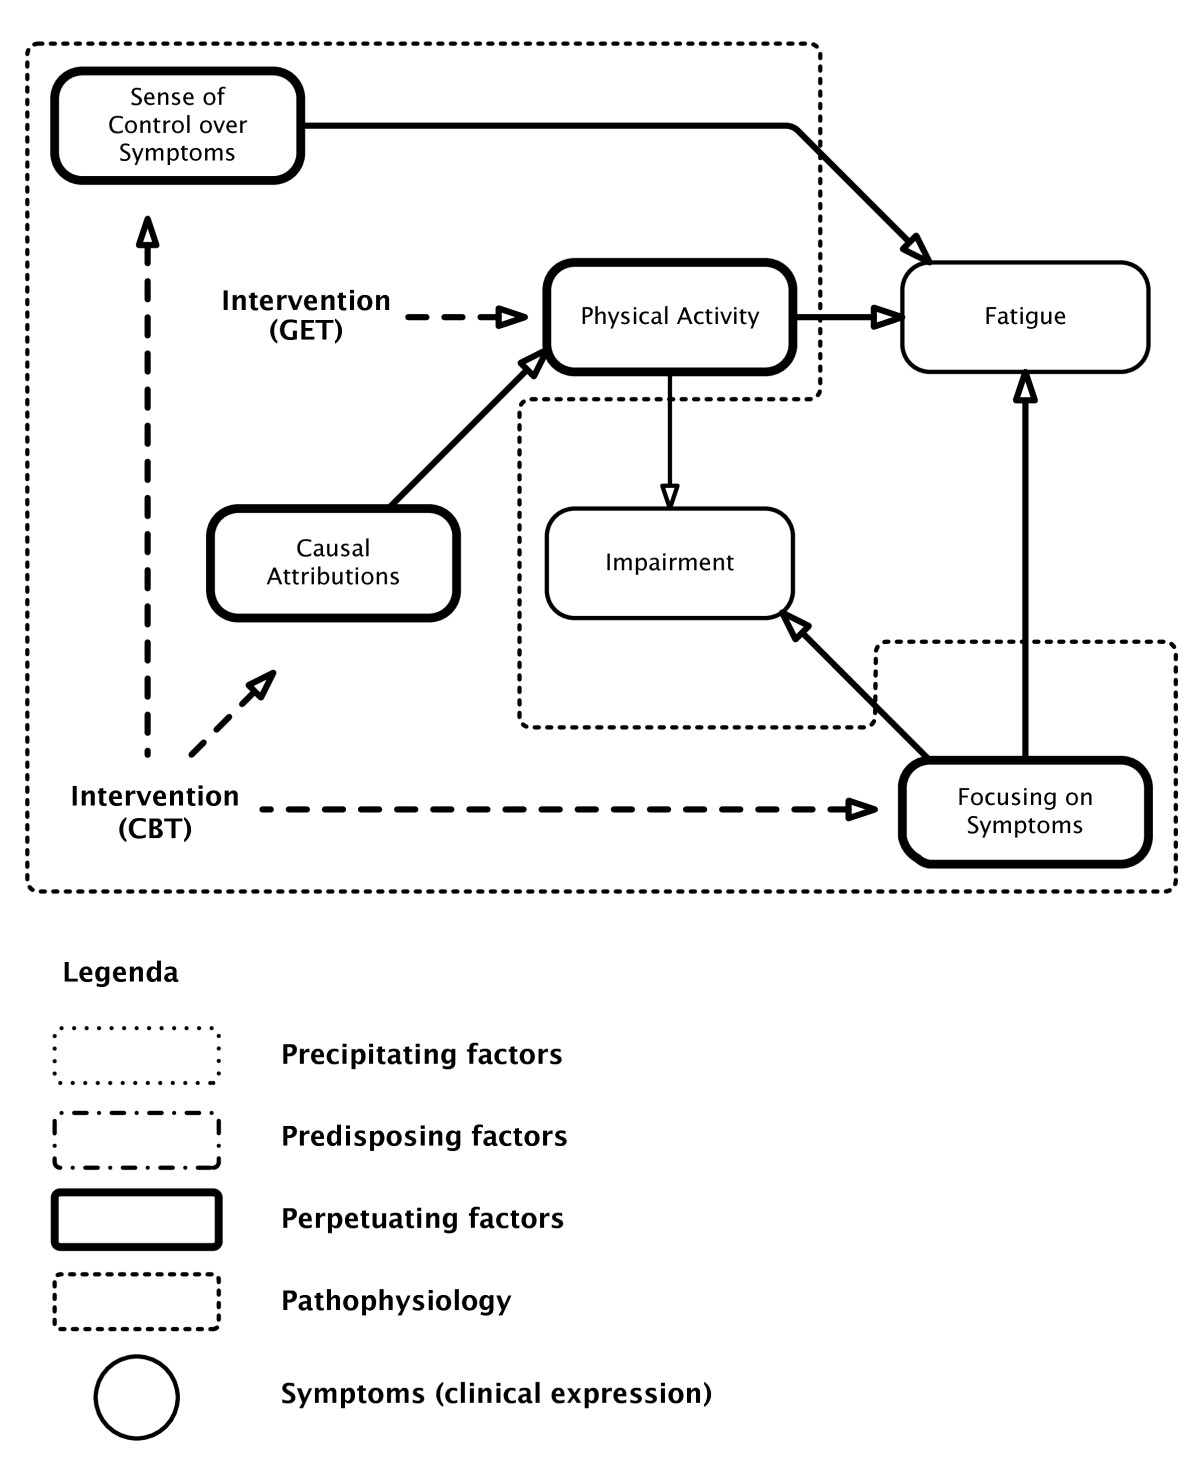 https://static-content.springer.com/image/art%3A10.1186%2F1741-7015-8-35/MediaObjects/12916_2009_Article_294_Fig2_HTML.jpg